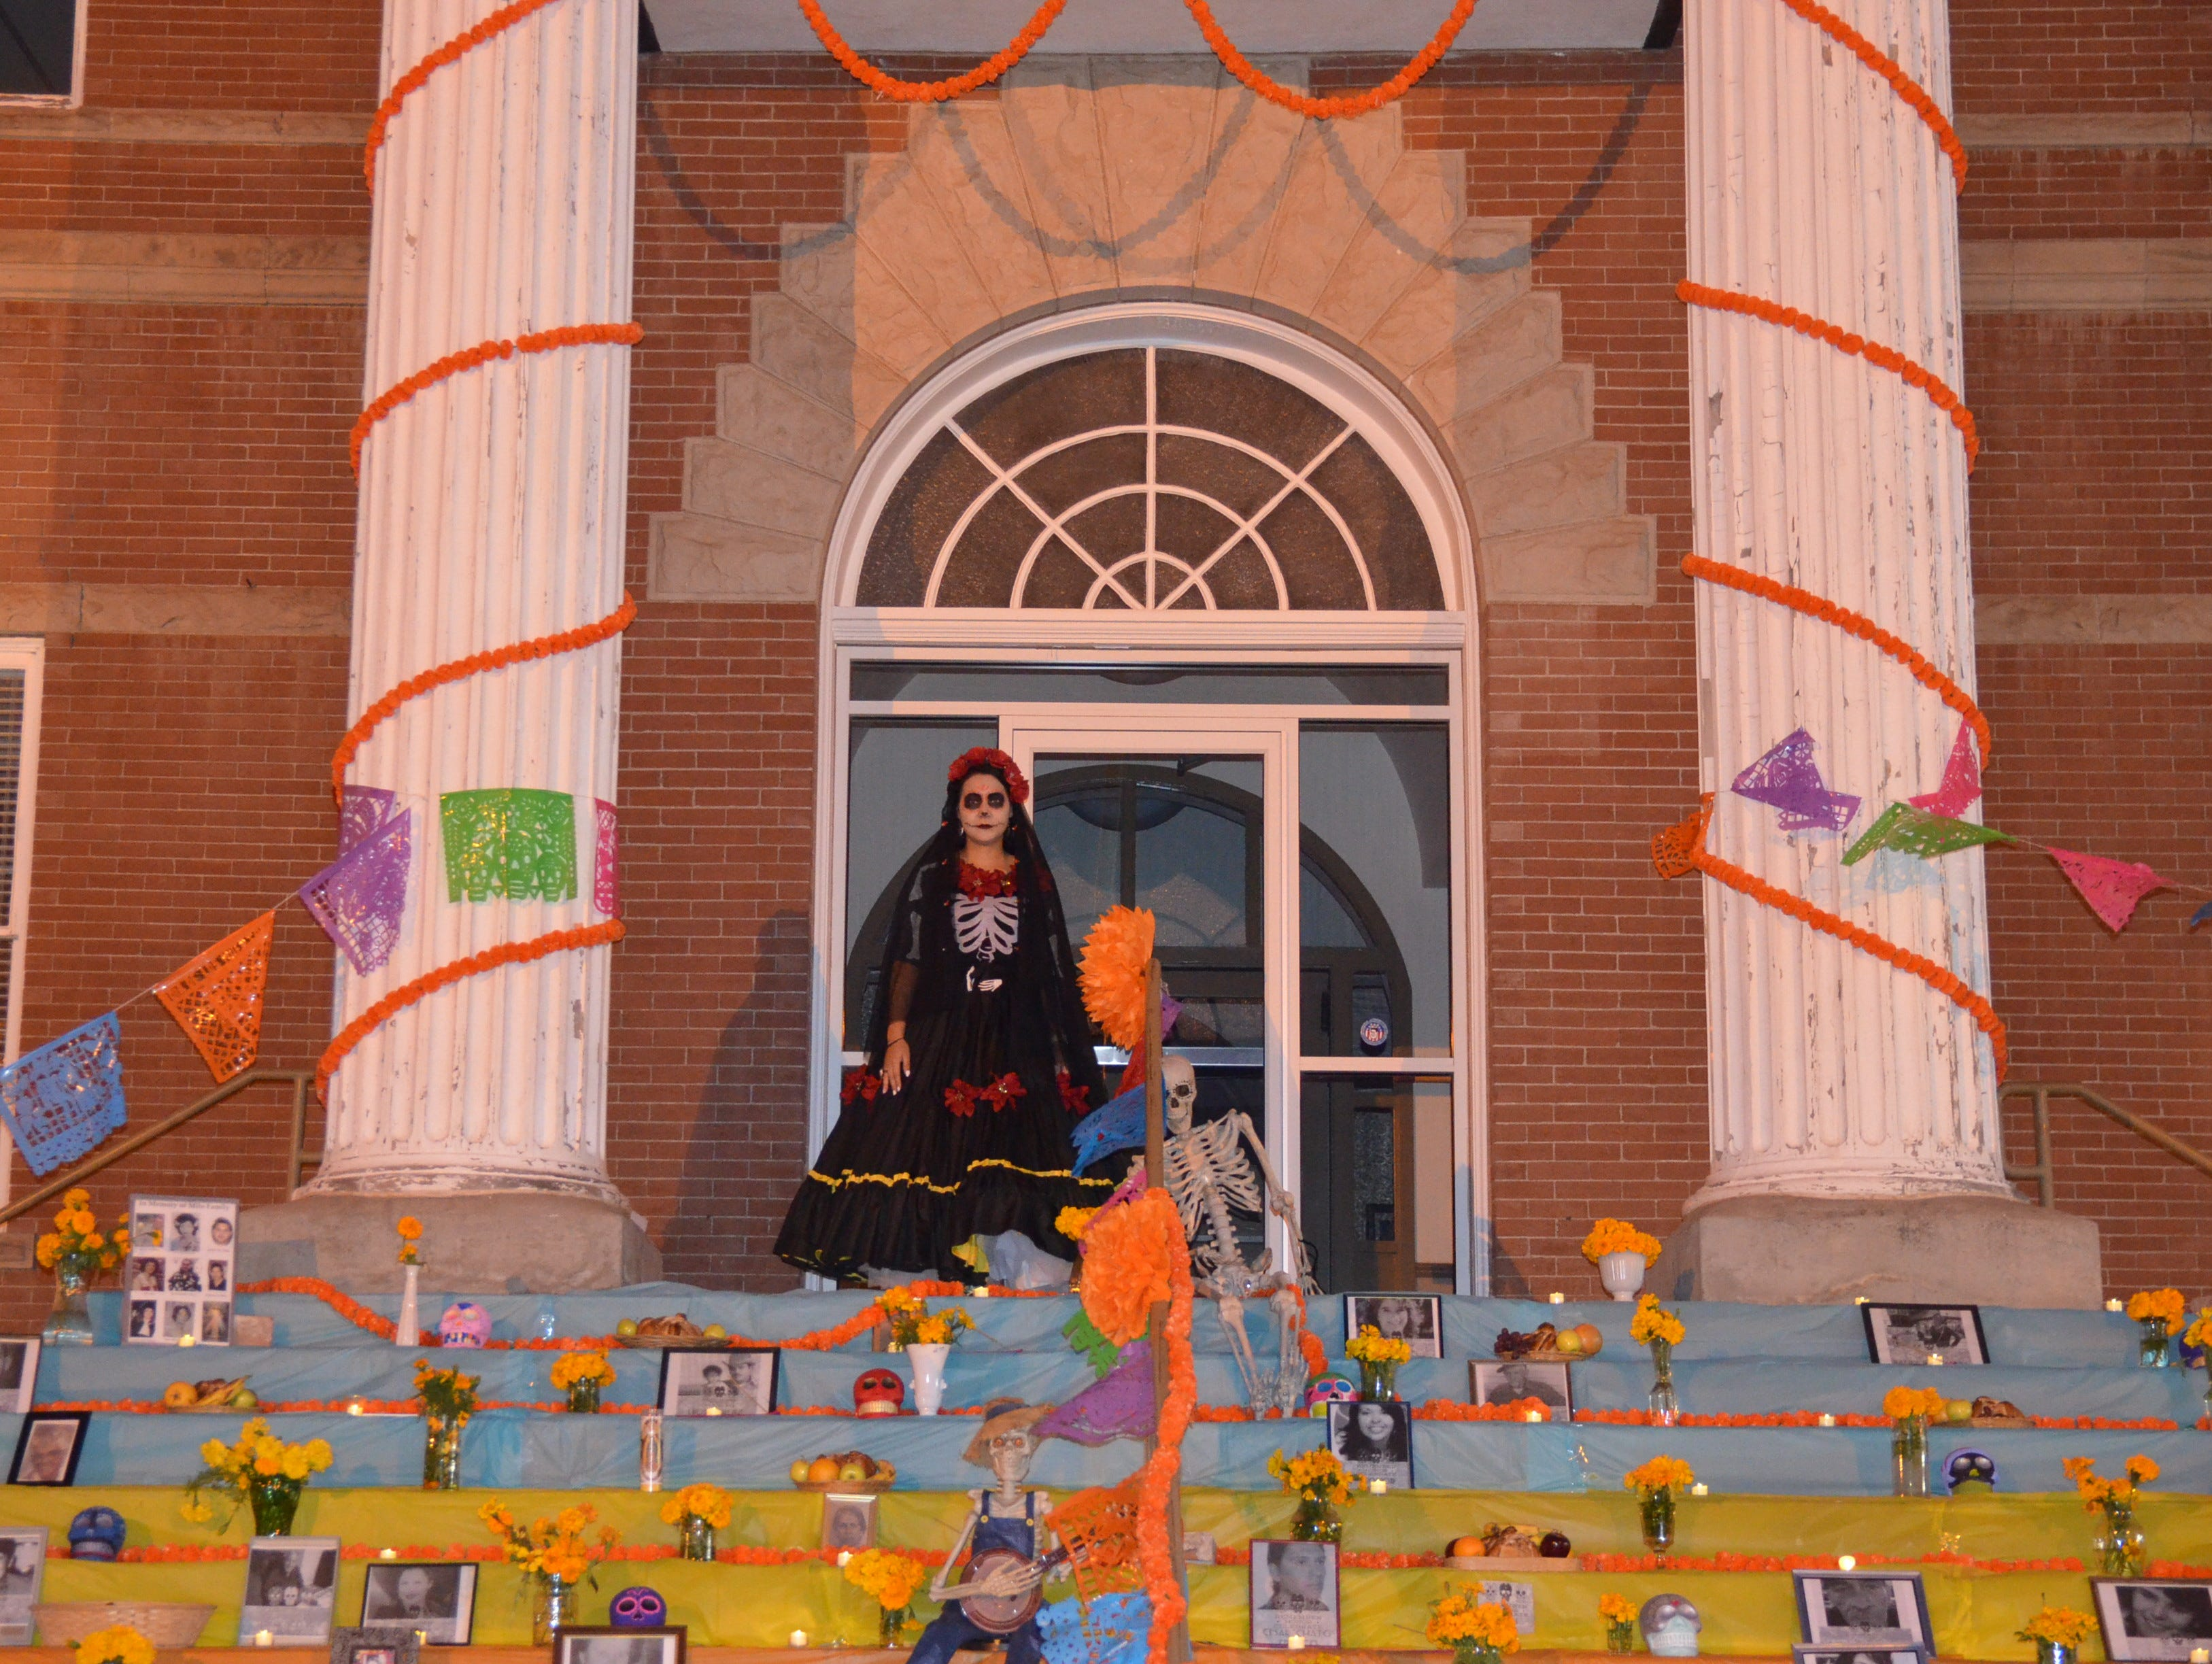 A Catrina Calavera stands on top of the Luna County Courthouse steps to oversee the Dia de los Muertos event.